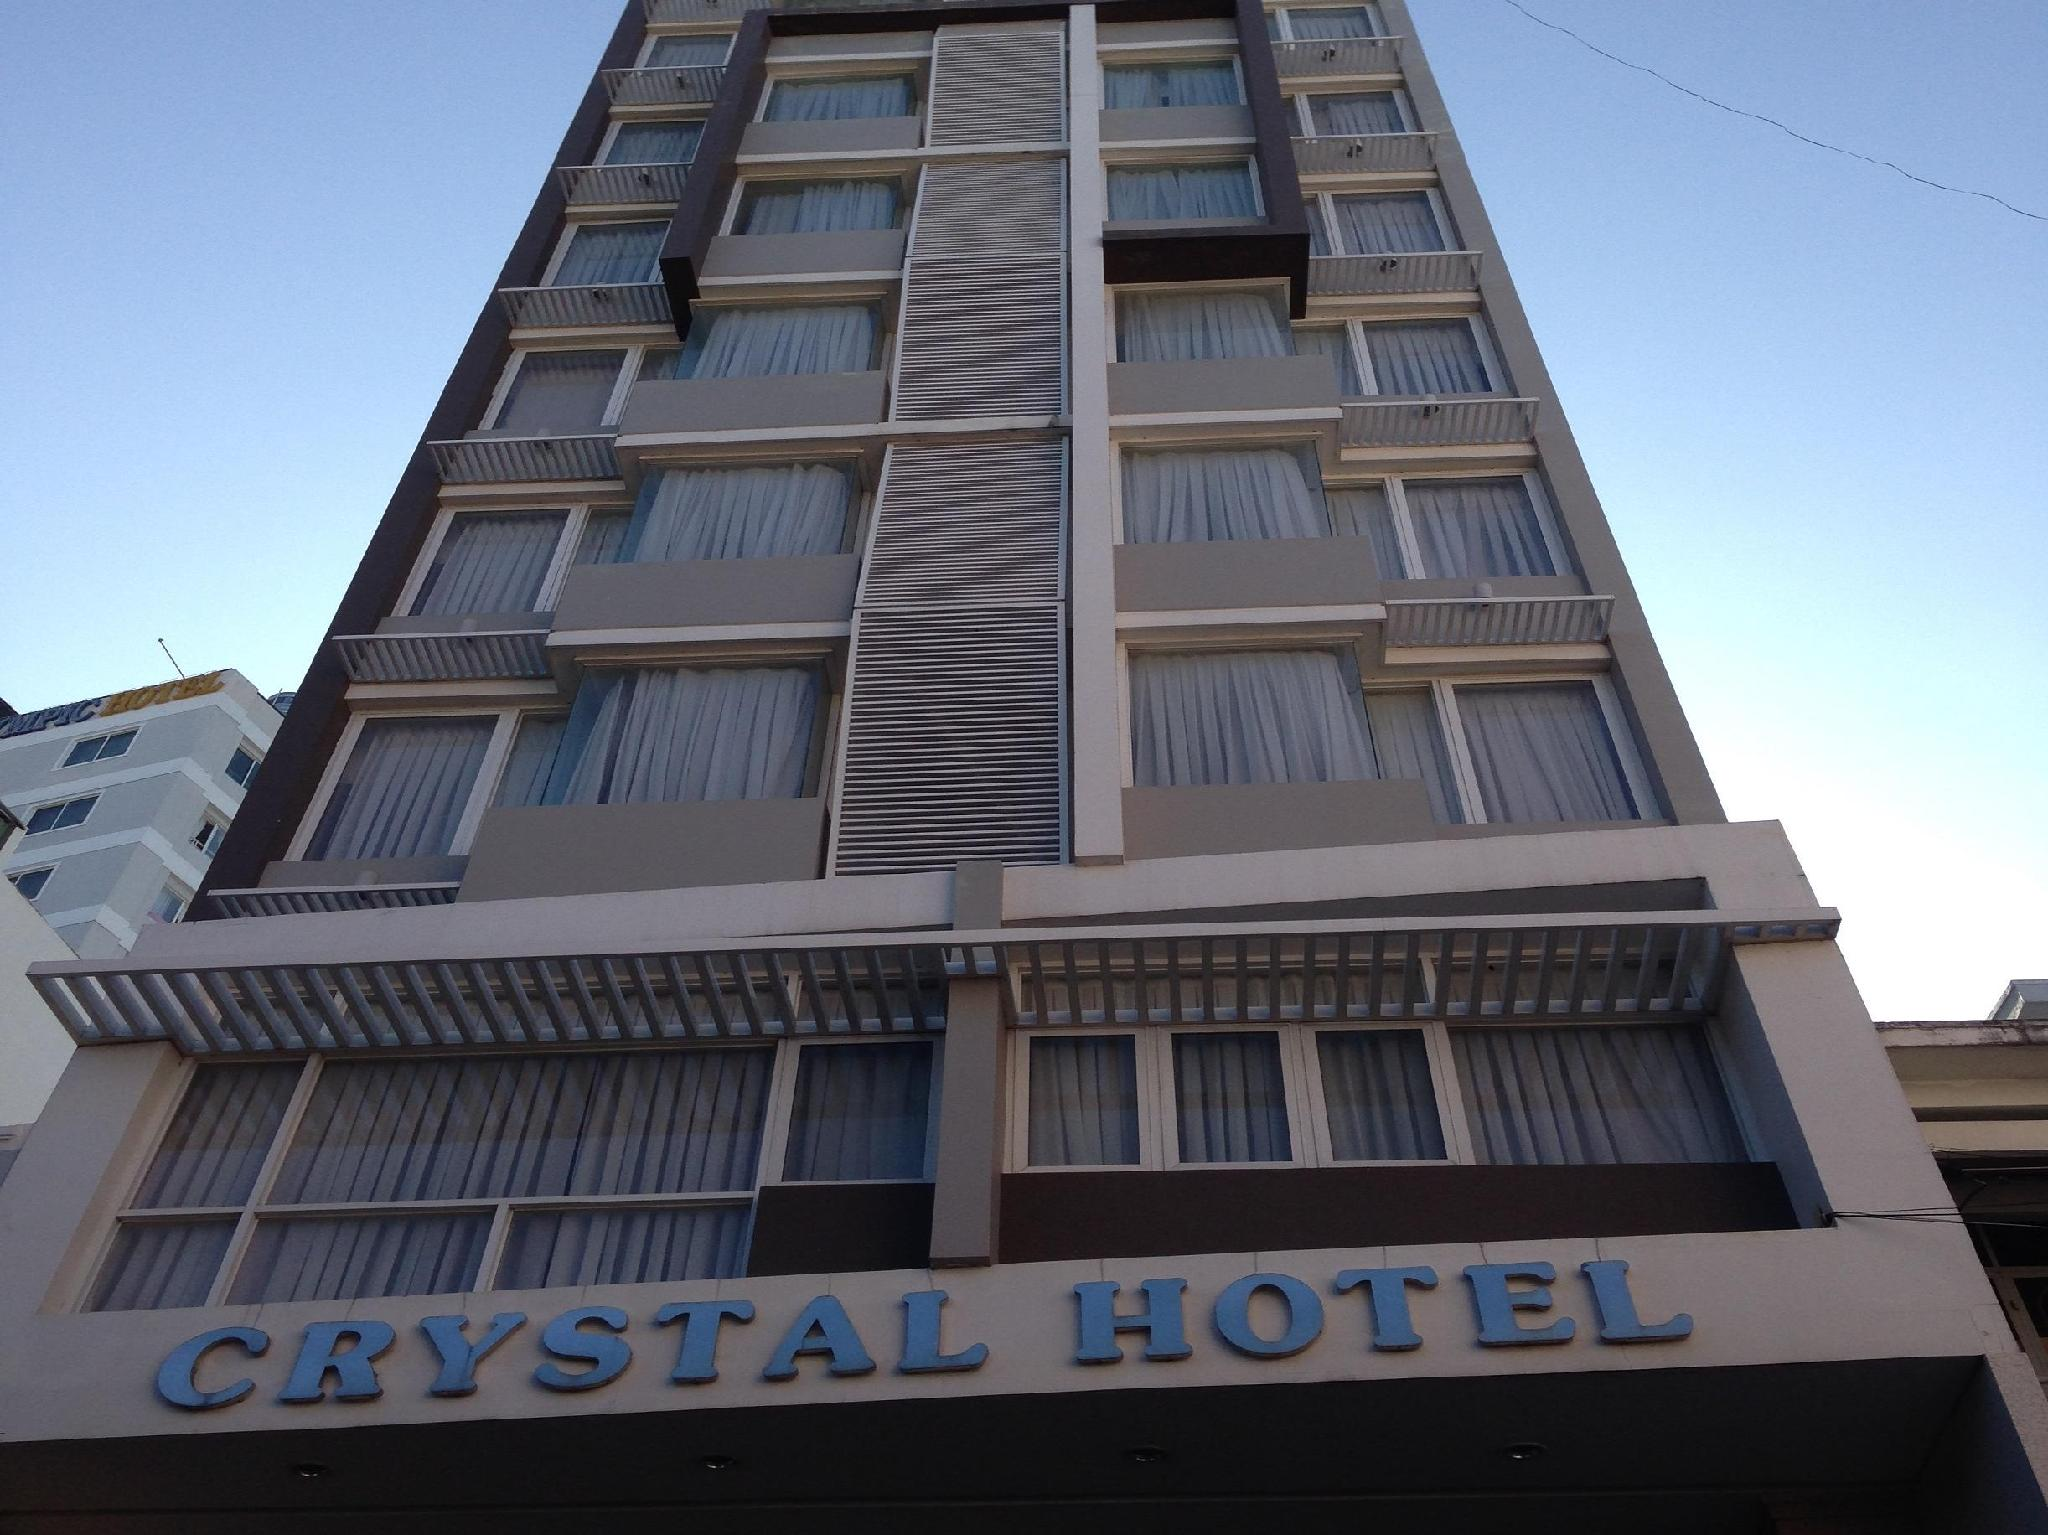 Hotell Crystal Hotel